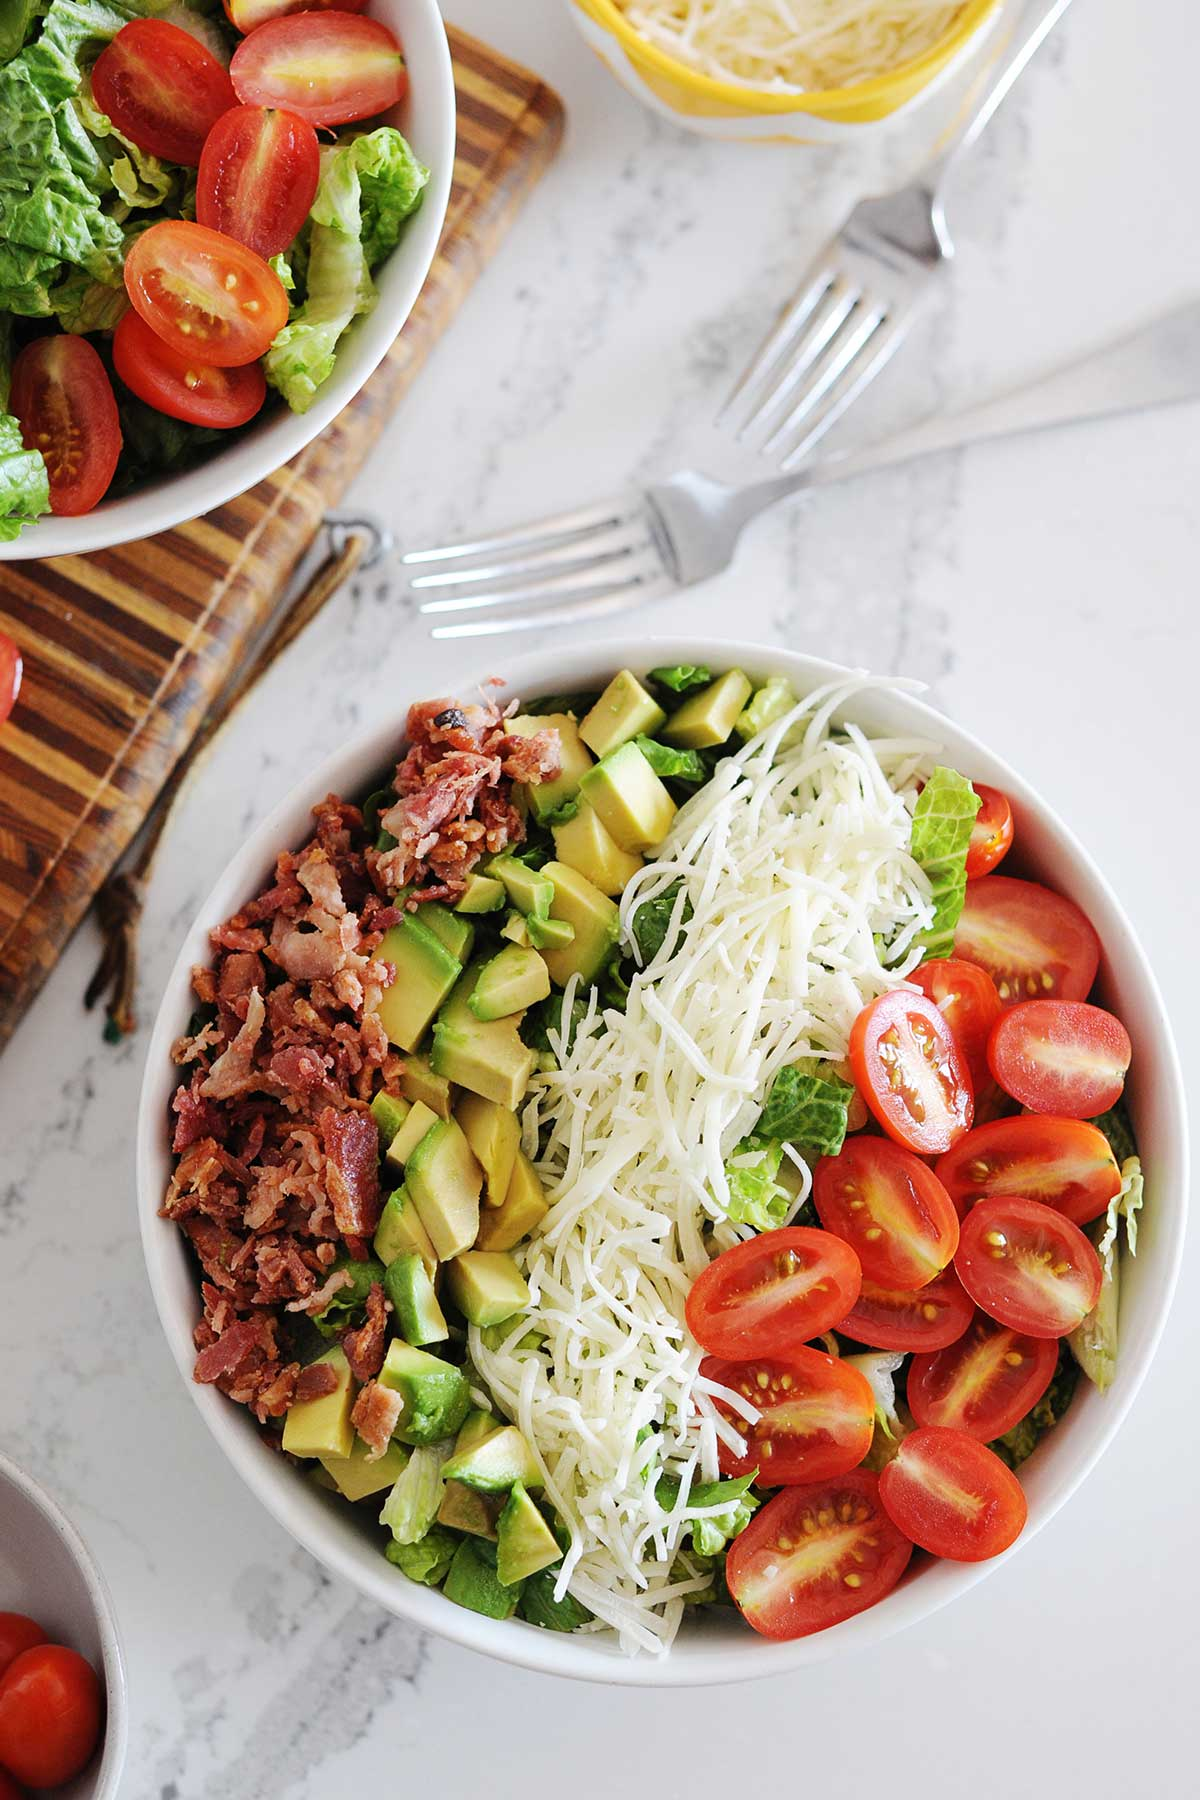 blt salad with no dressing in a bowl